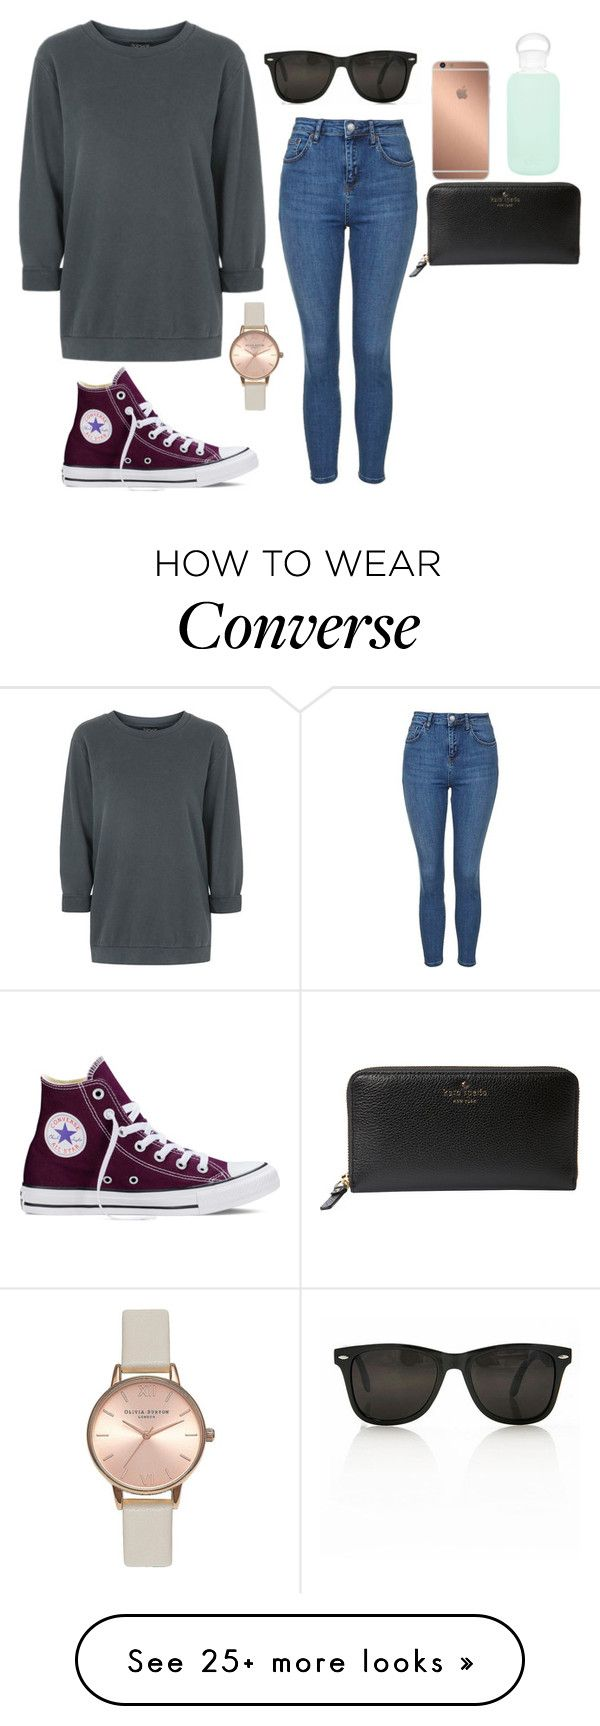 """""""Untitled #1319"""" by oswaldforthewin on Polyvore featuring Topshop, Converse, Kate Spade, Mura, bkr, women's clothing, women's fashion, women, female and woman"""